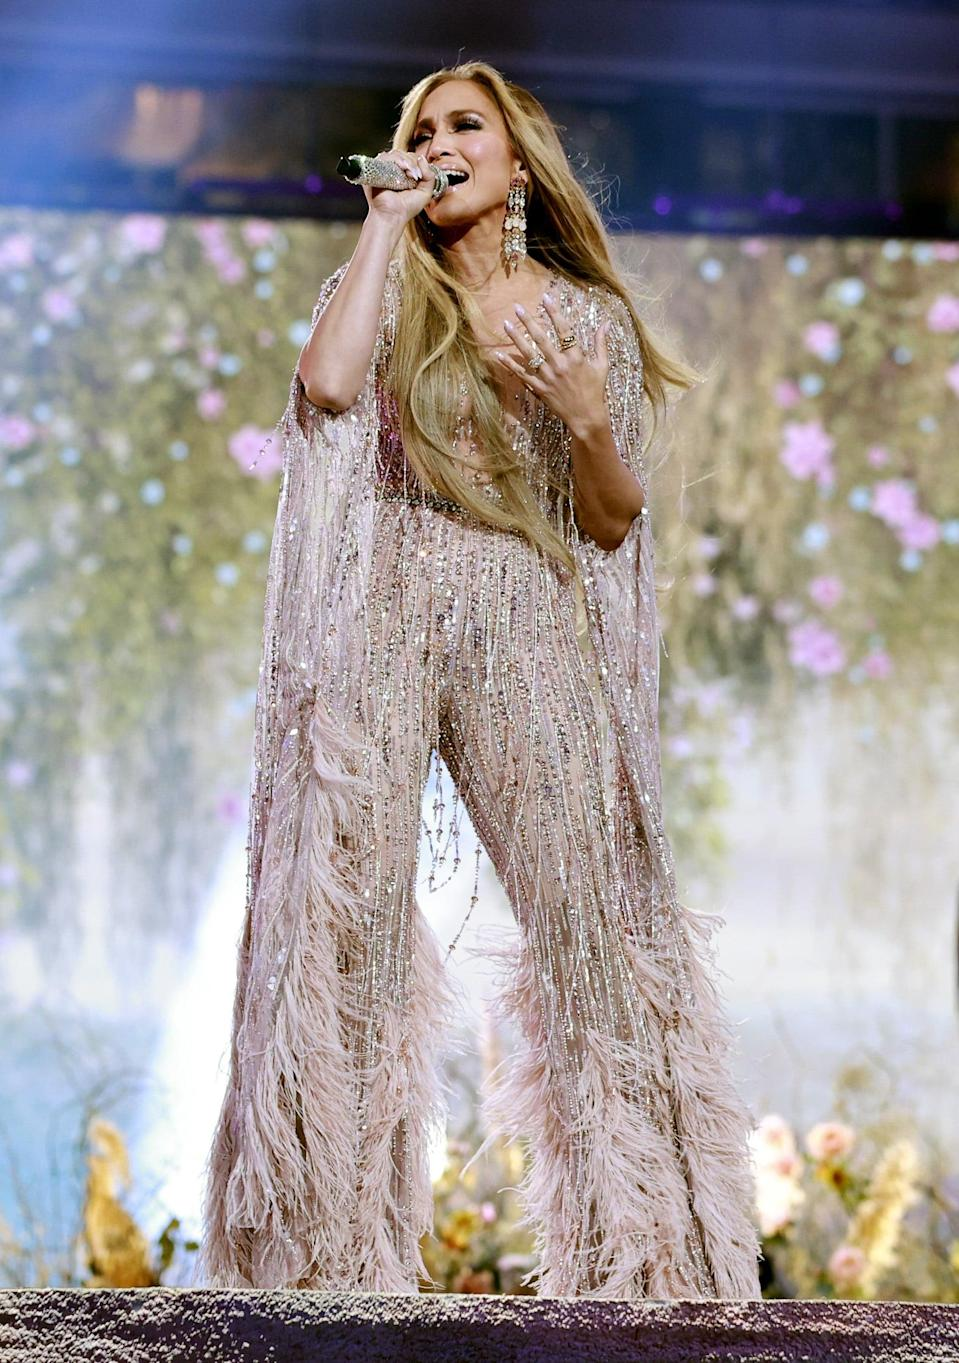 <p>This Couture look comes from Zuhair Murad's spring/summer 2021 collection, complete with feathered sleeves and flared pants, plus plenty of beaded tasseling. It was also complete with Vrai jewels for J Lo's performance.</p>